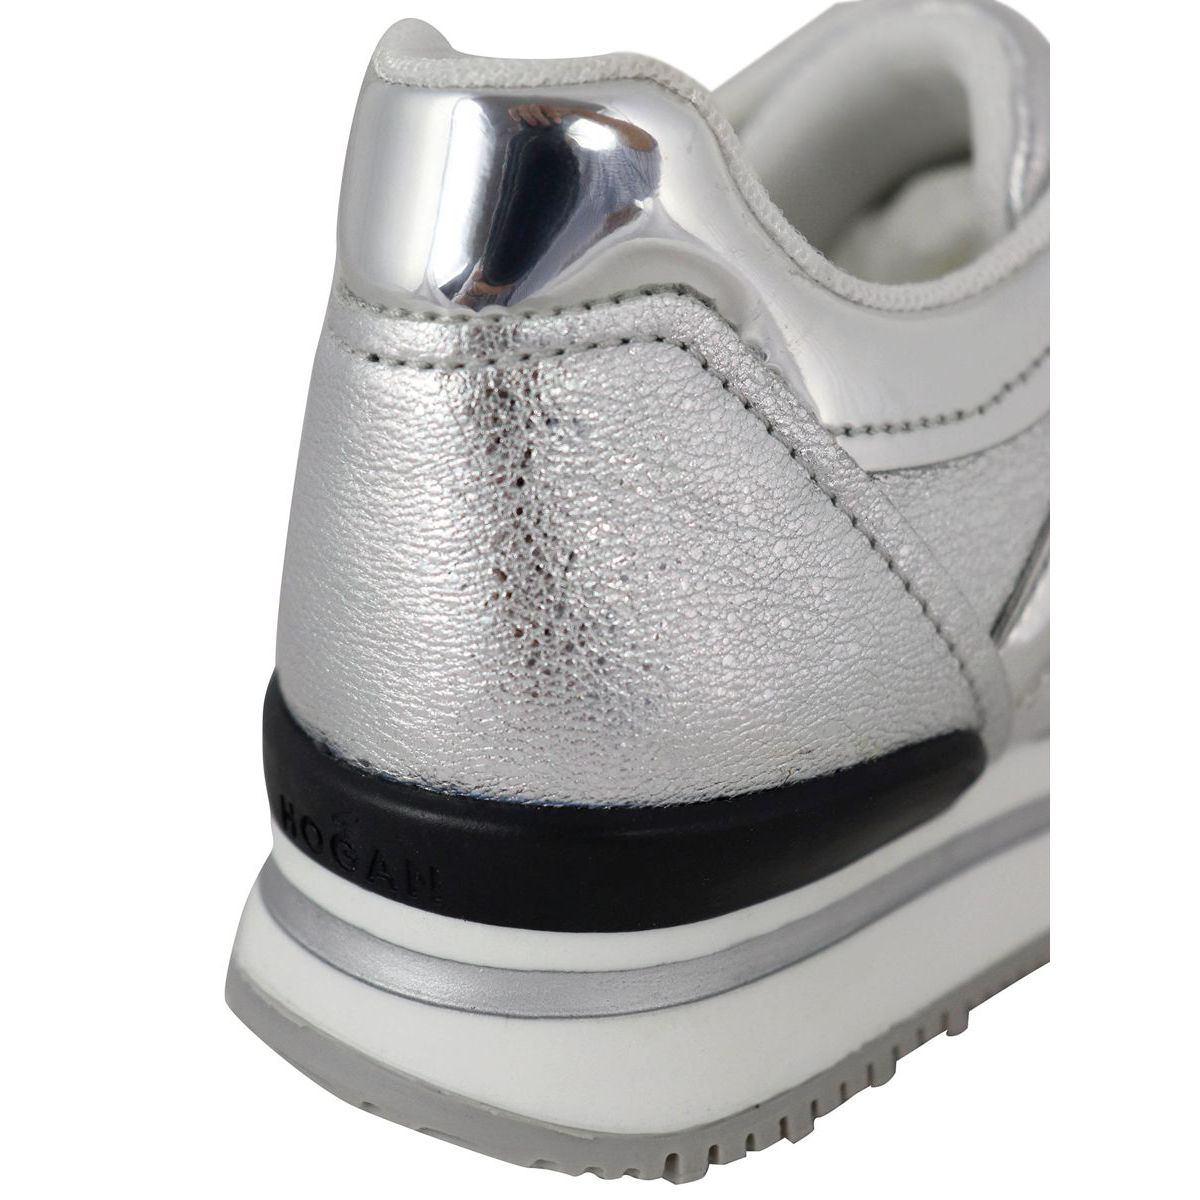 222 bottom sneakers with big H Silver Hogan